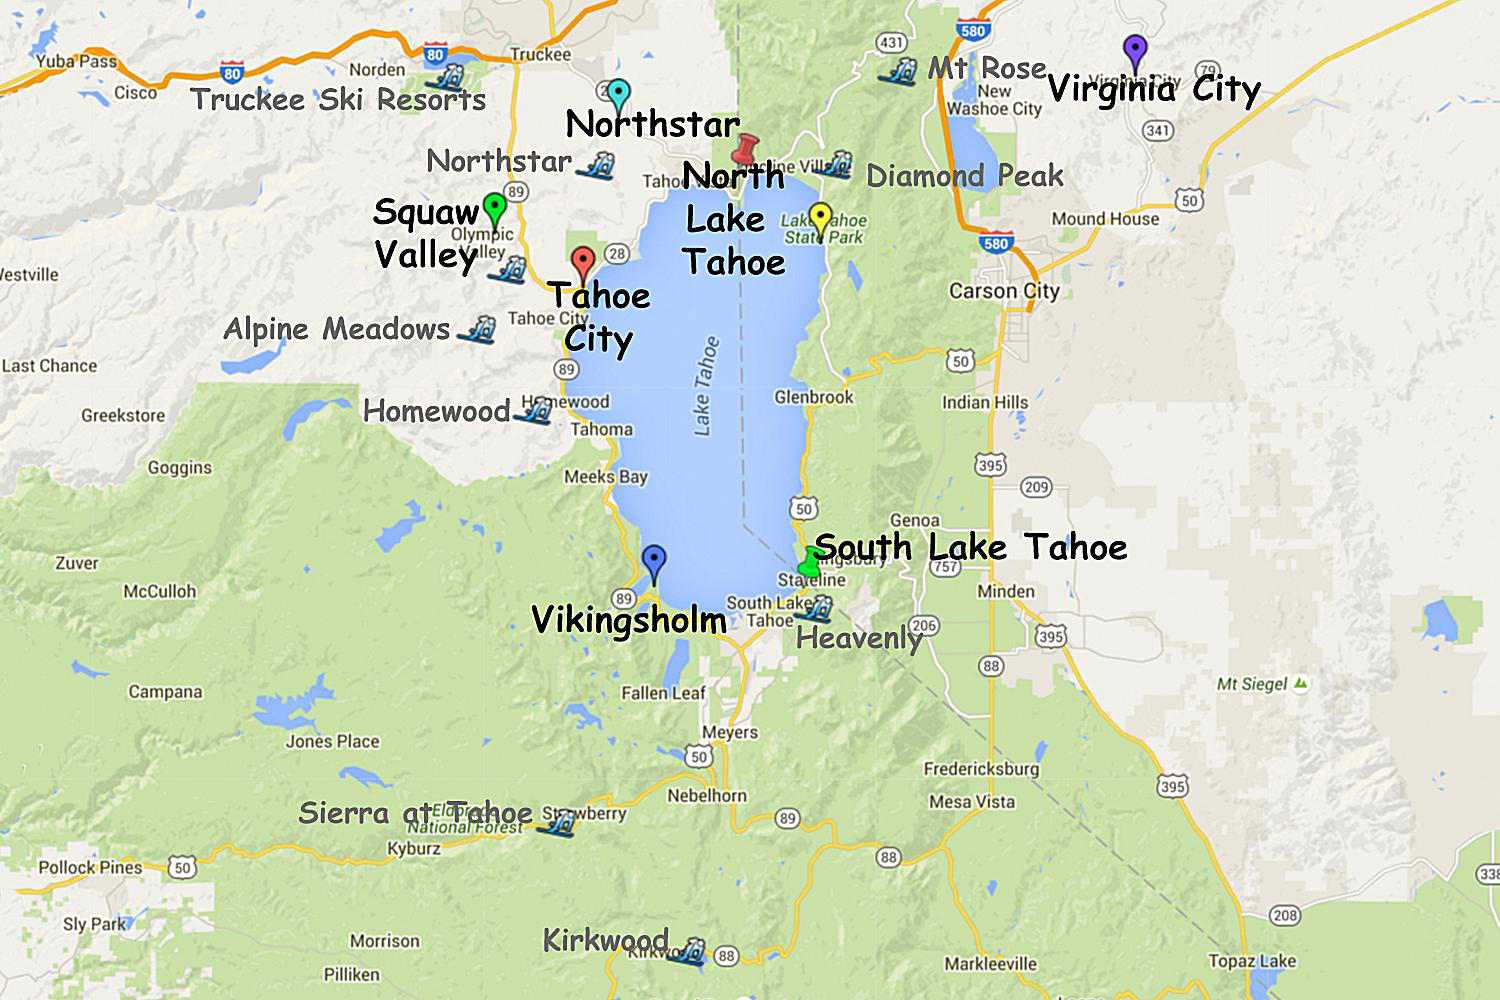 Guide To Planning A Lake Tahoe California Vacation - Lake Tahoe California Map